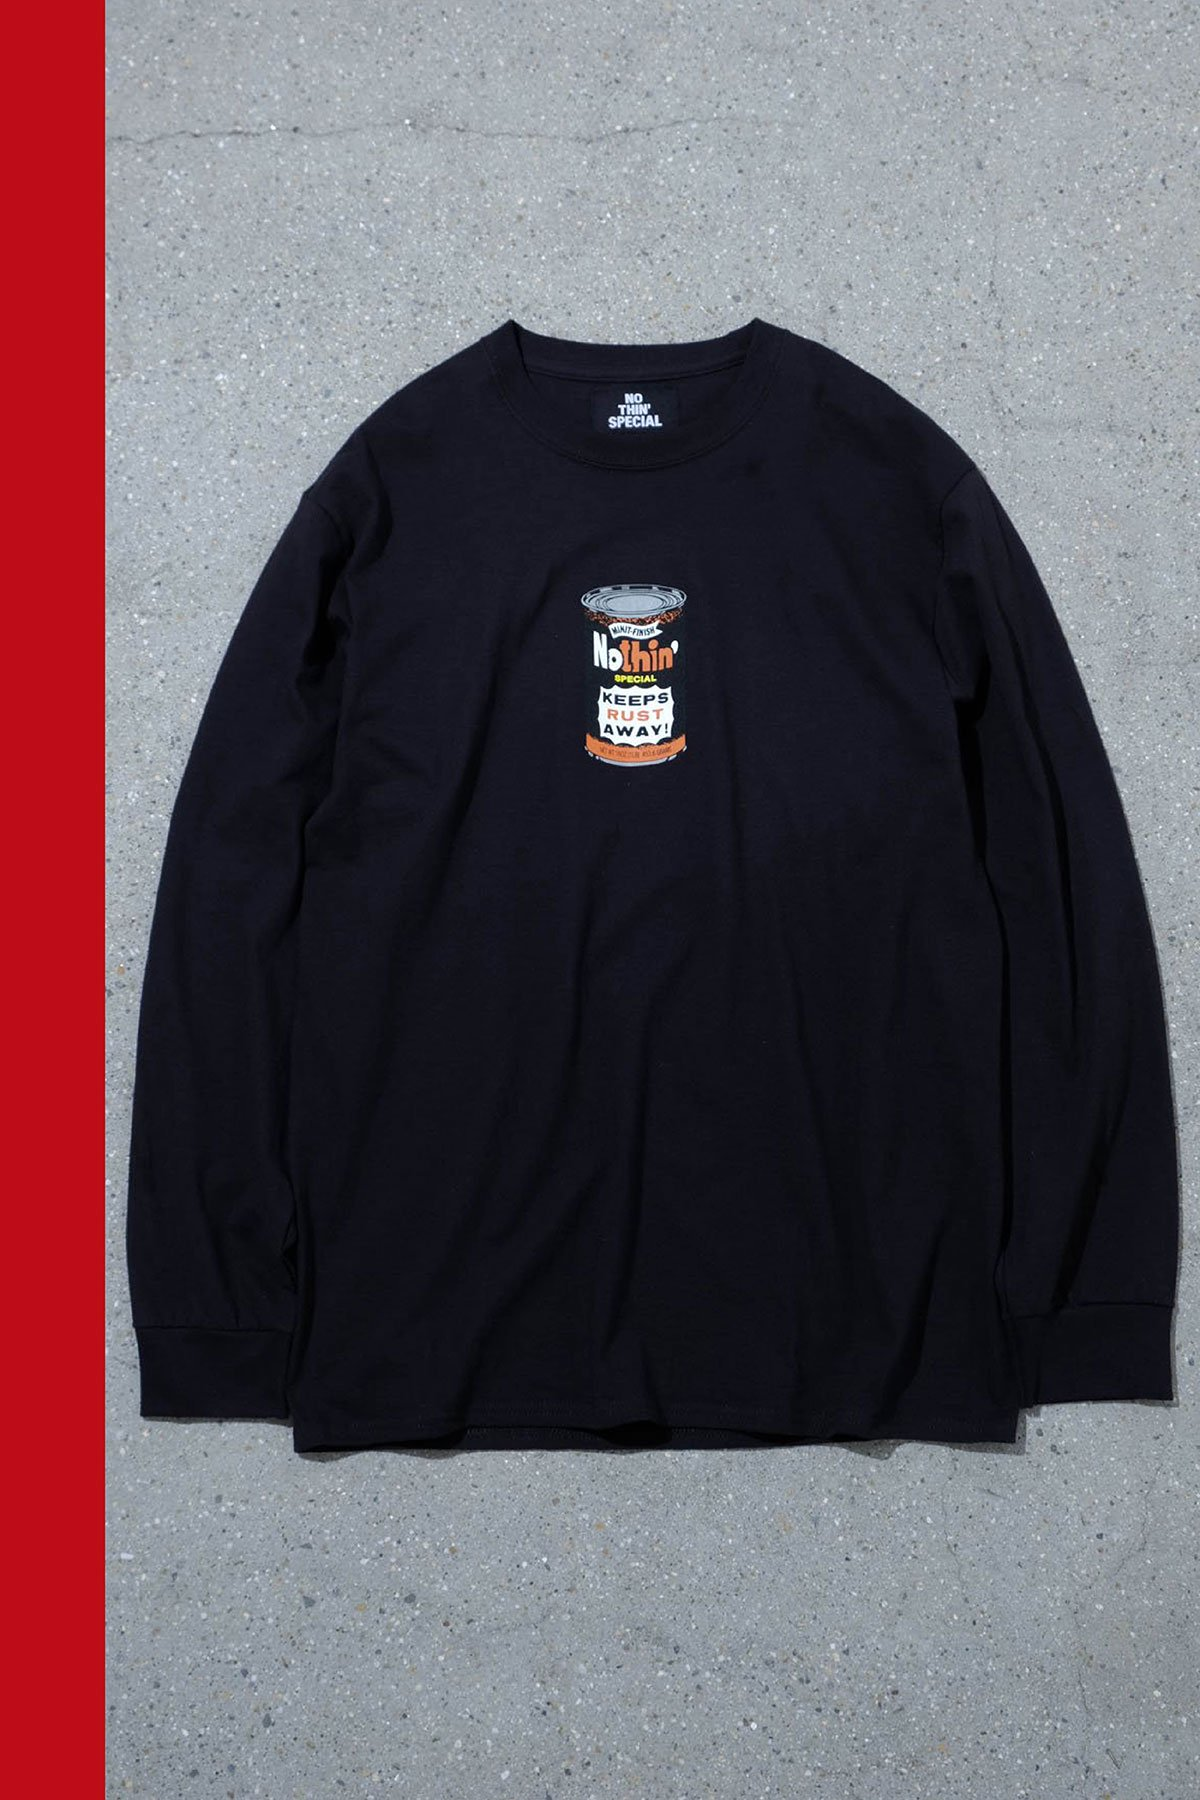 NOTHIN' SPECIAL / SPRAY CAN LONG SLEEVE